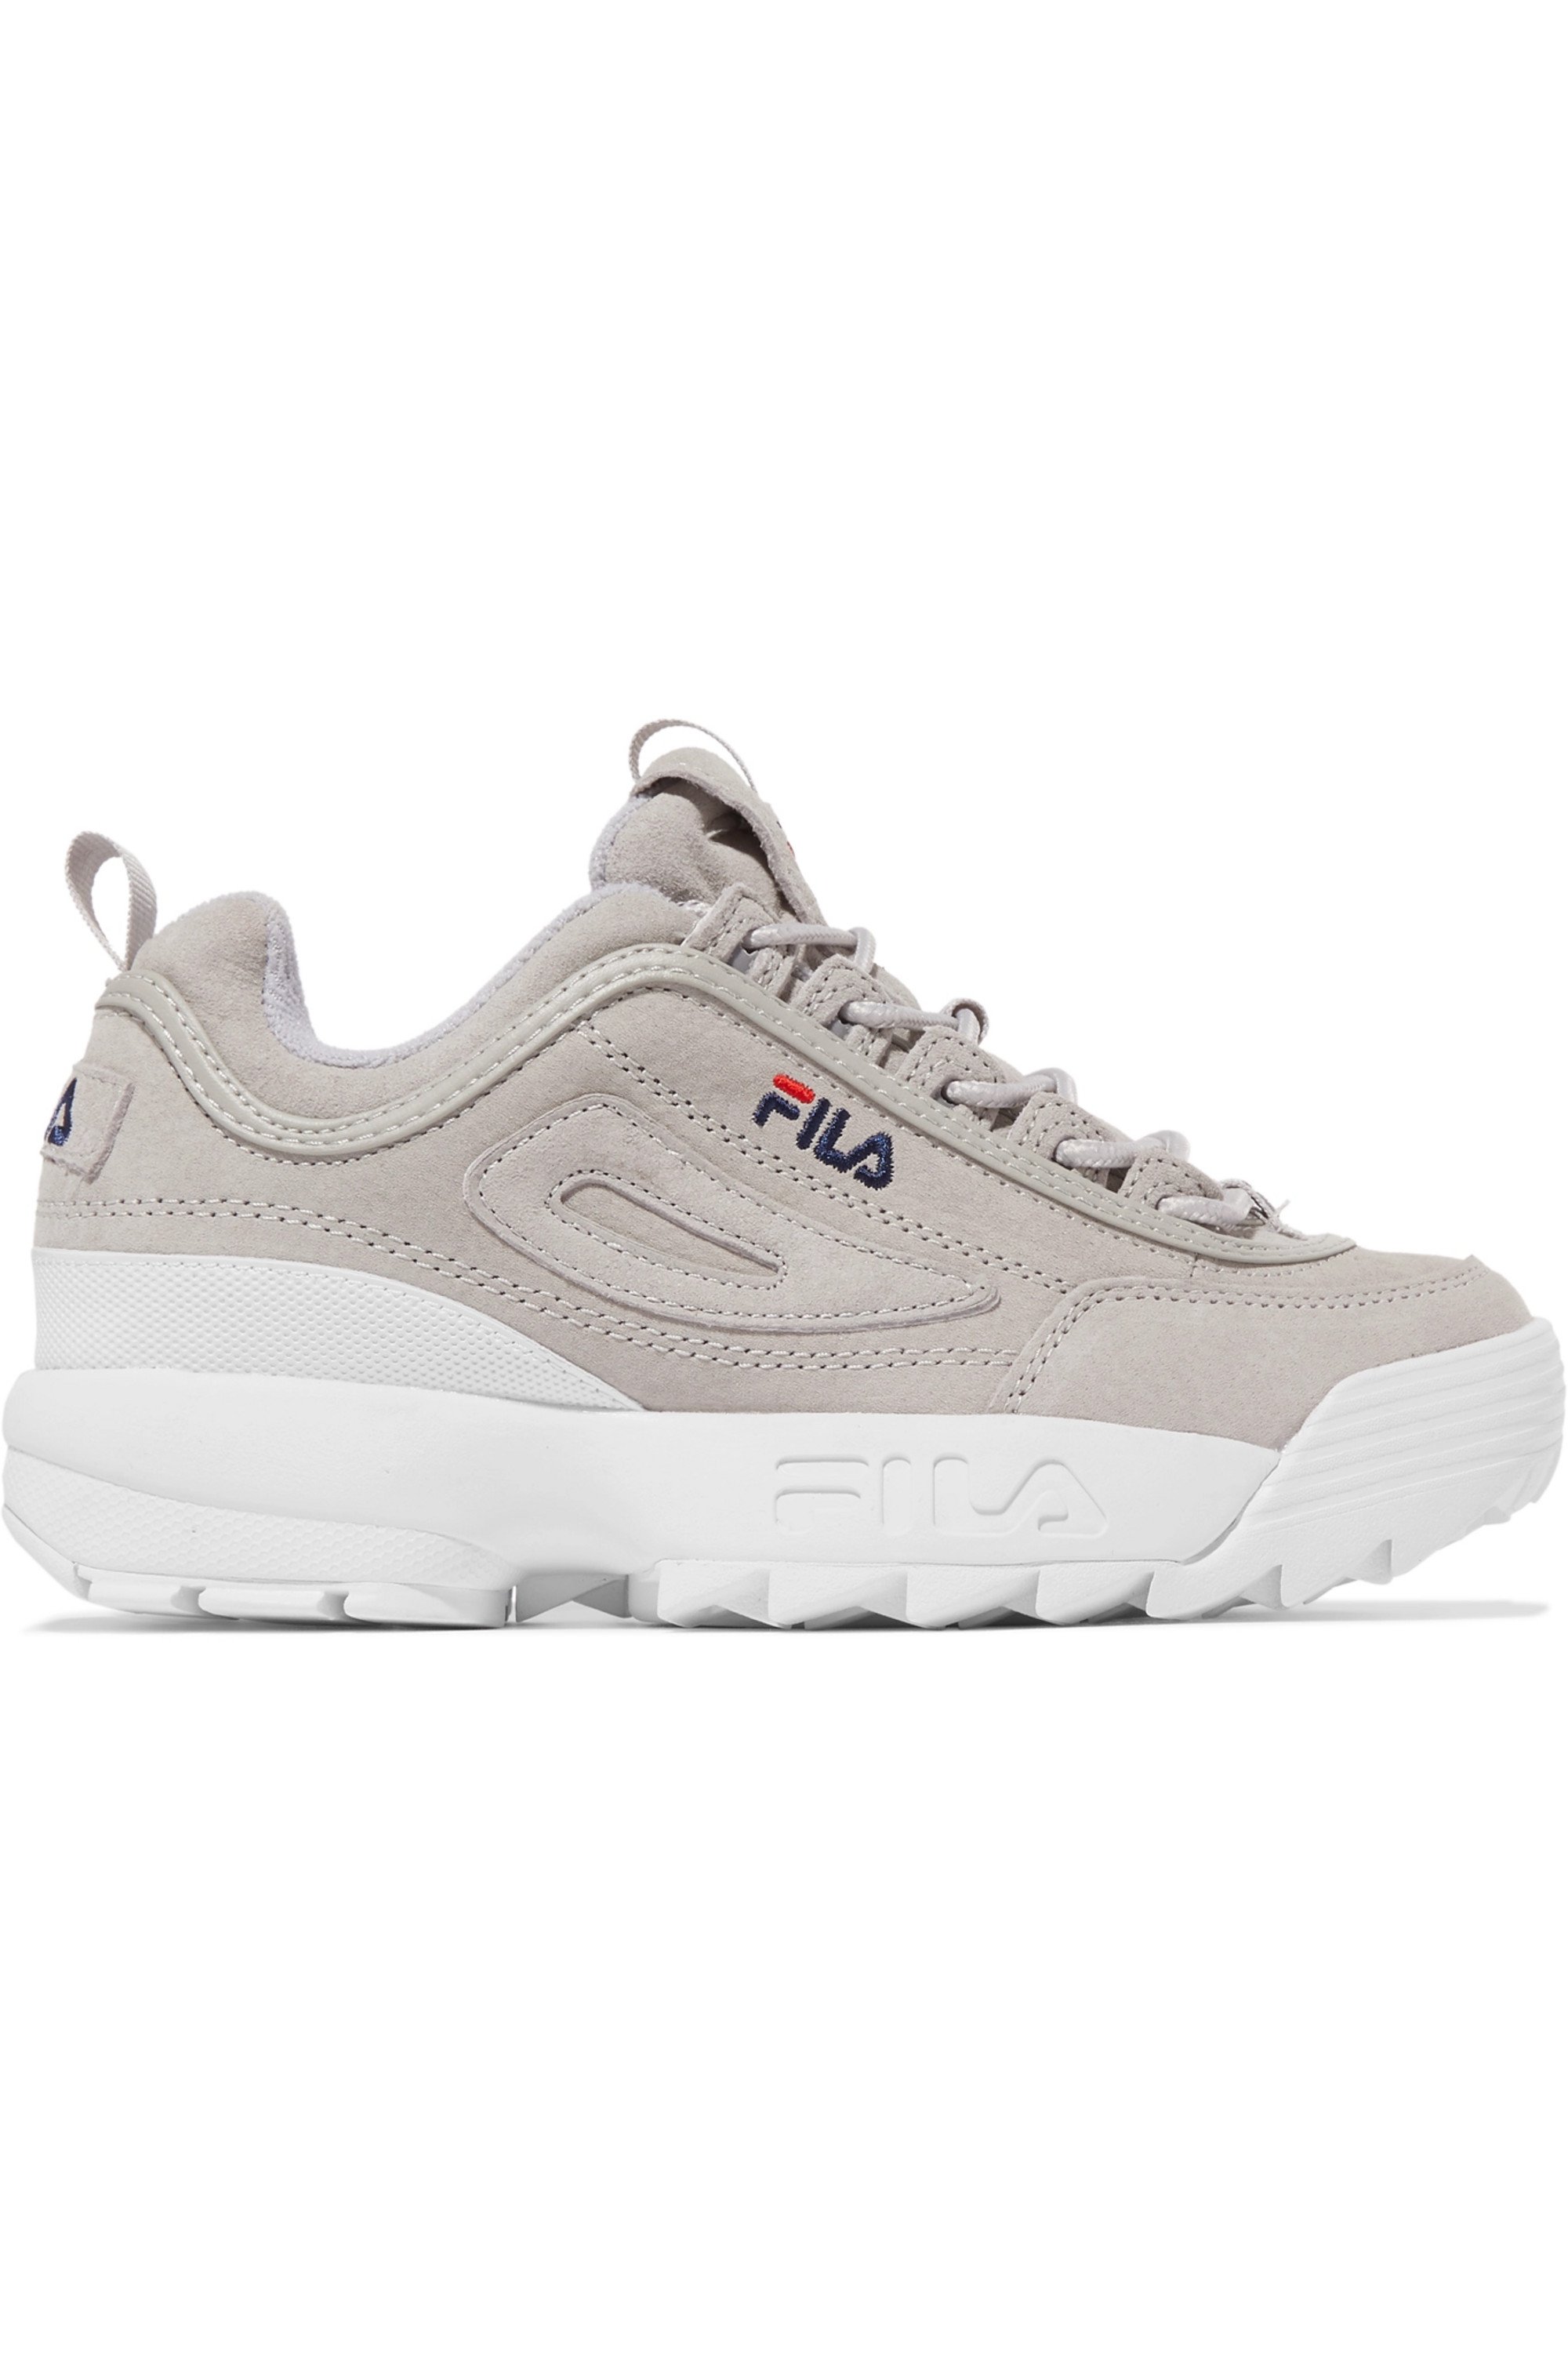 fila embroidered sneakers